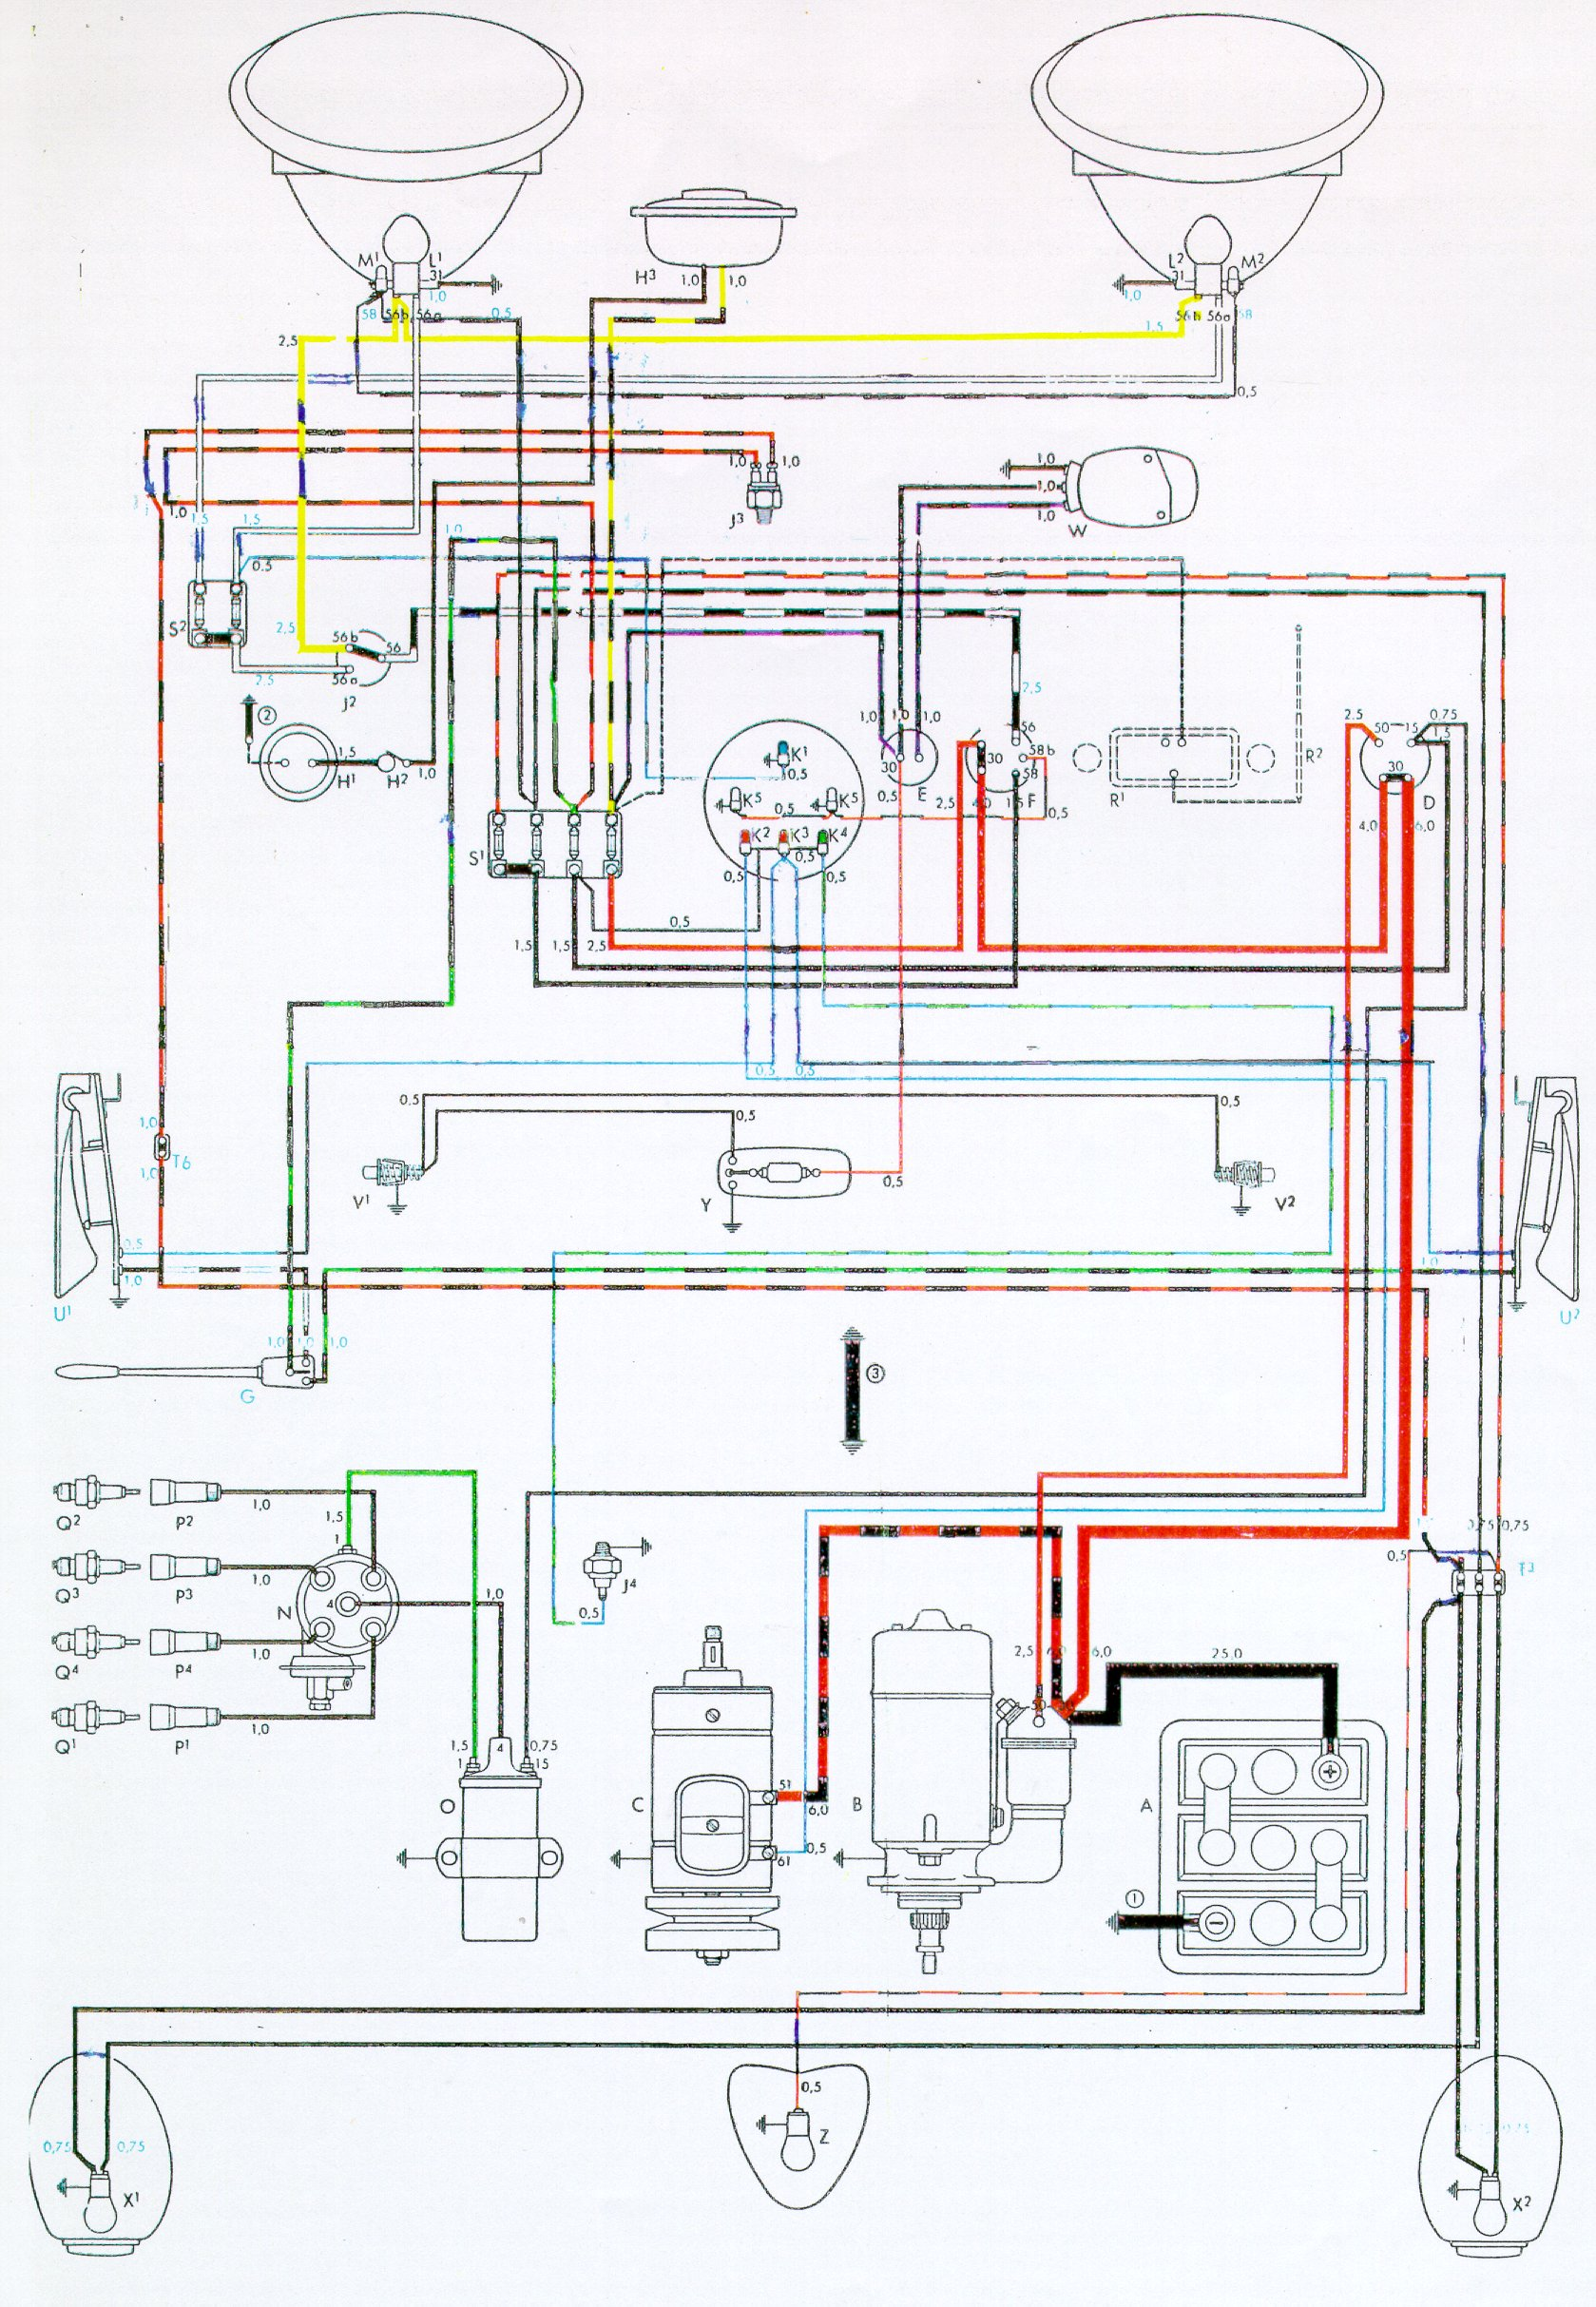 bug 54 vw wiring diagrams 1971 vw beetle wiring diagram at nearapp.co